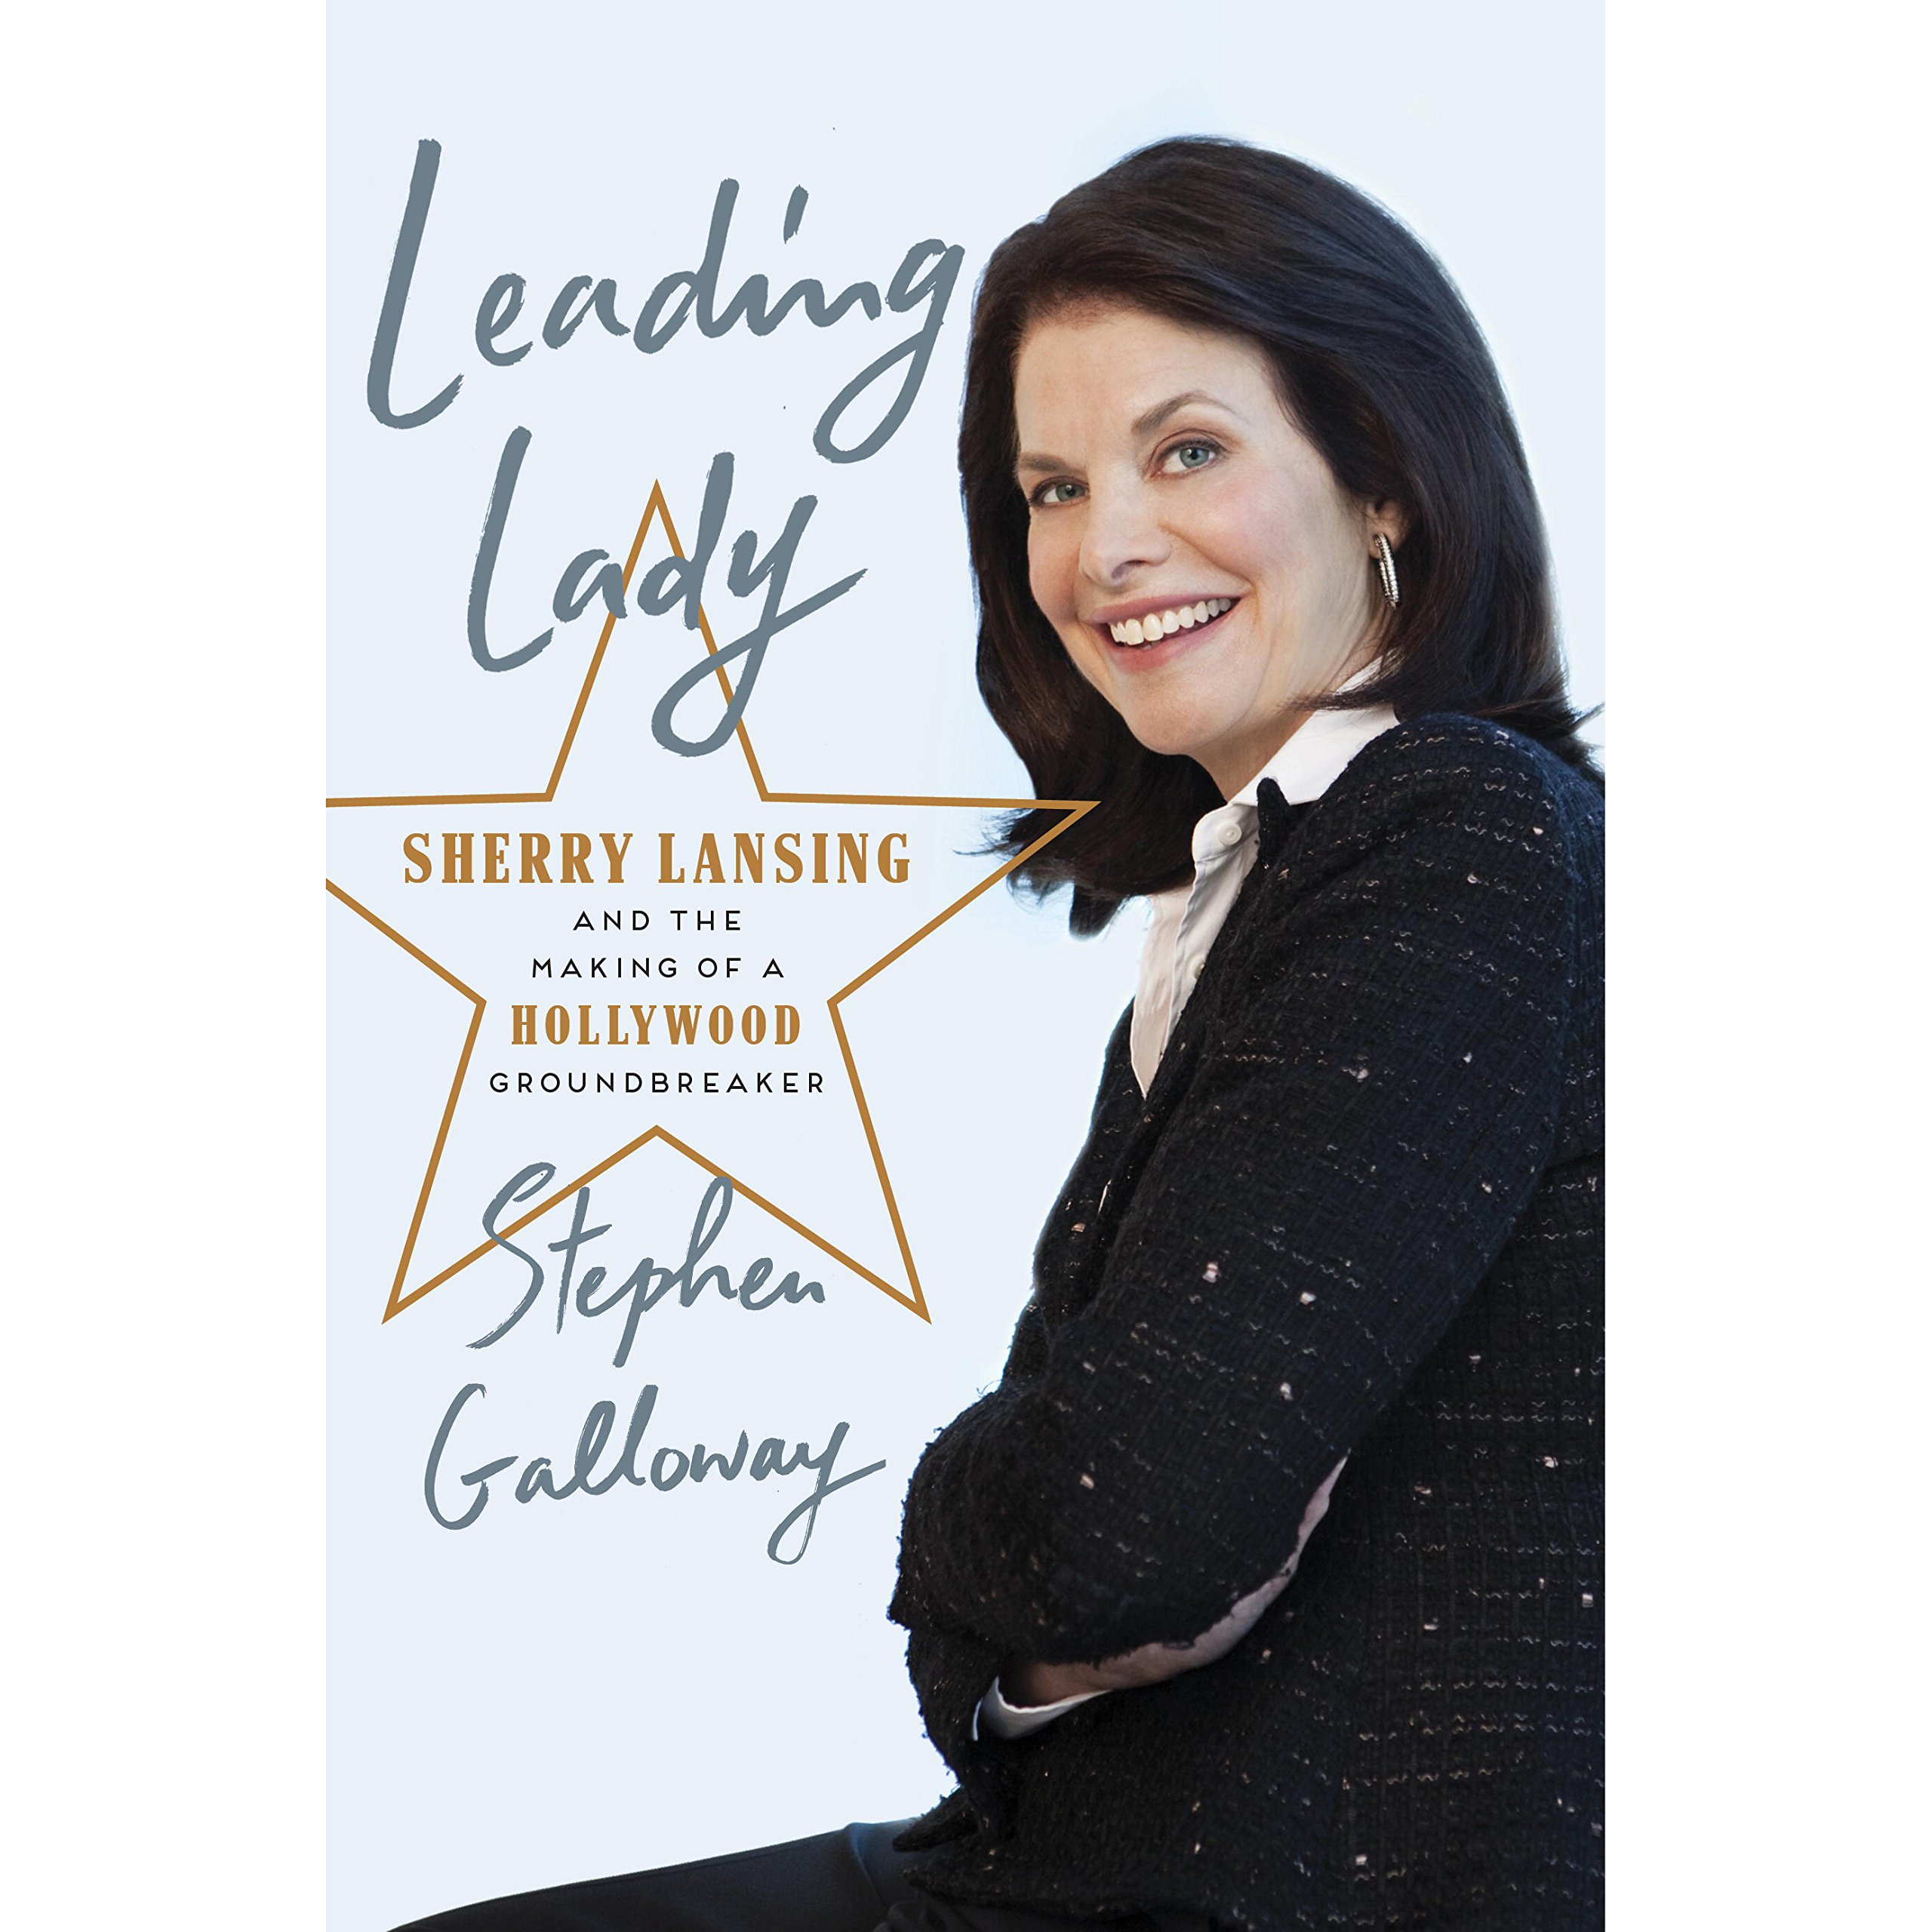 Leading Lady: Sherry Lansing and the Making of a Hollywood Groundbreaker